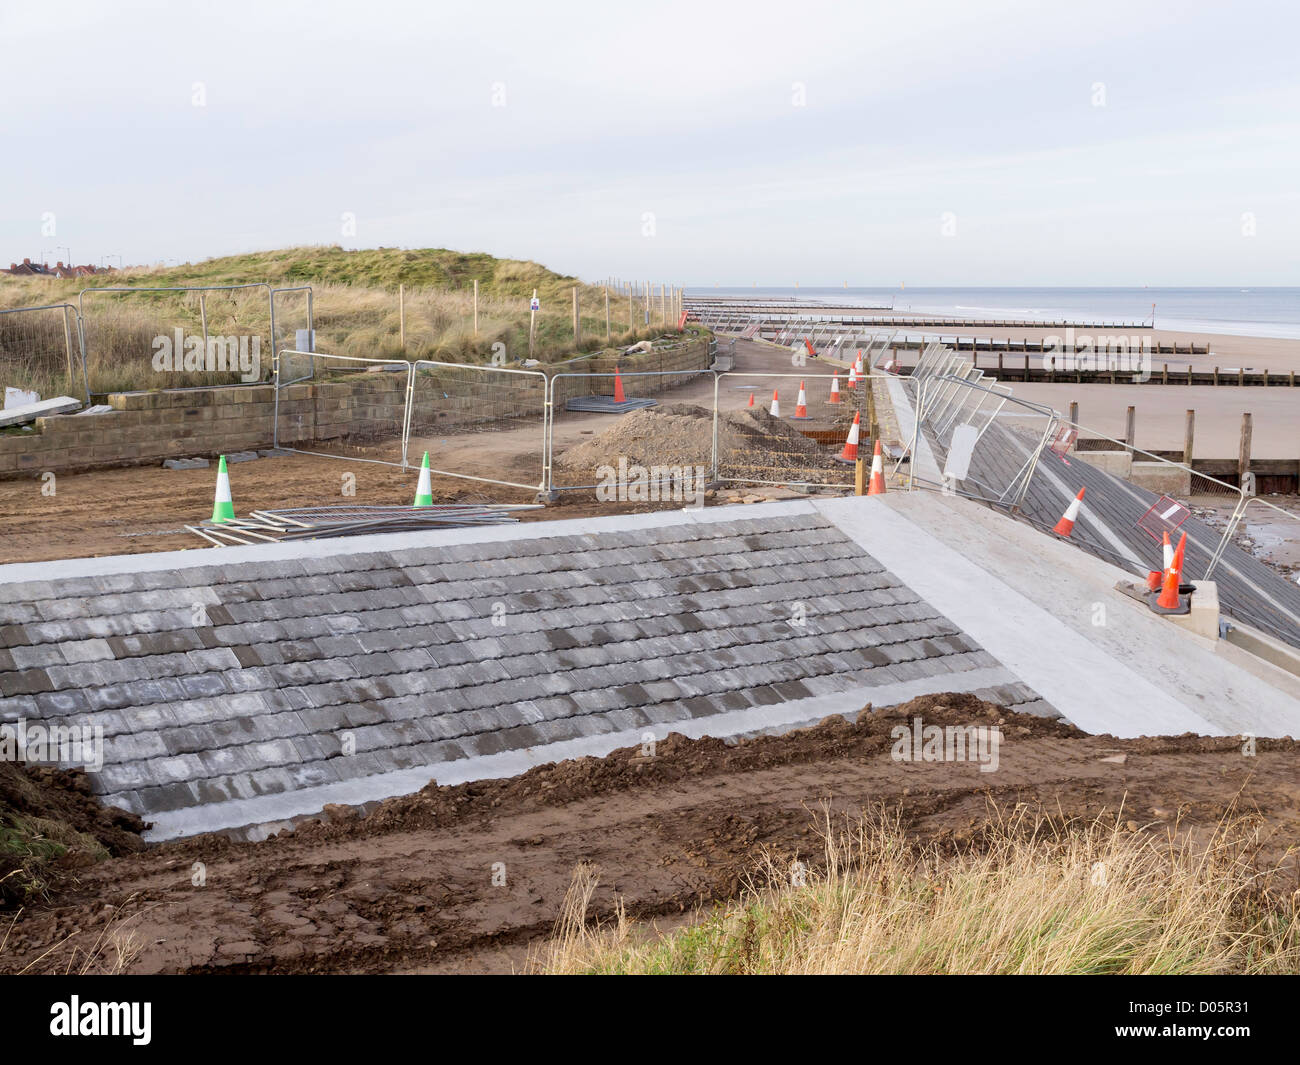 Granite Block Seawall : Construction of a new sea wall in front sand dunes at